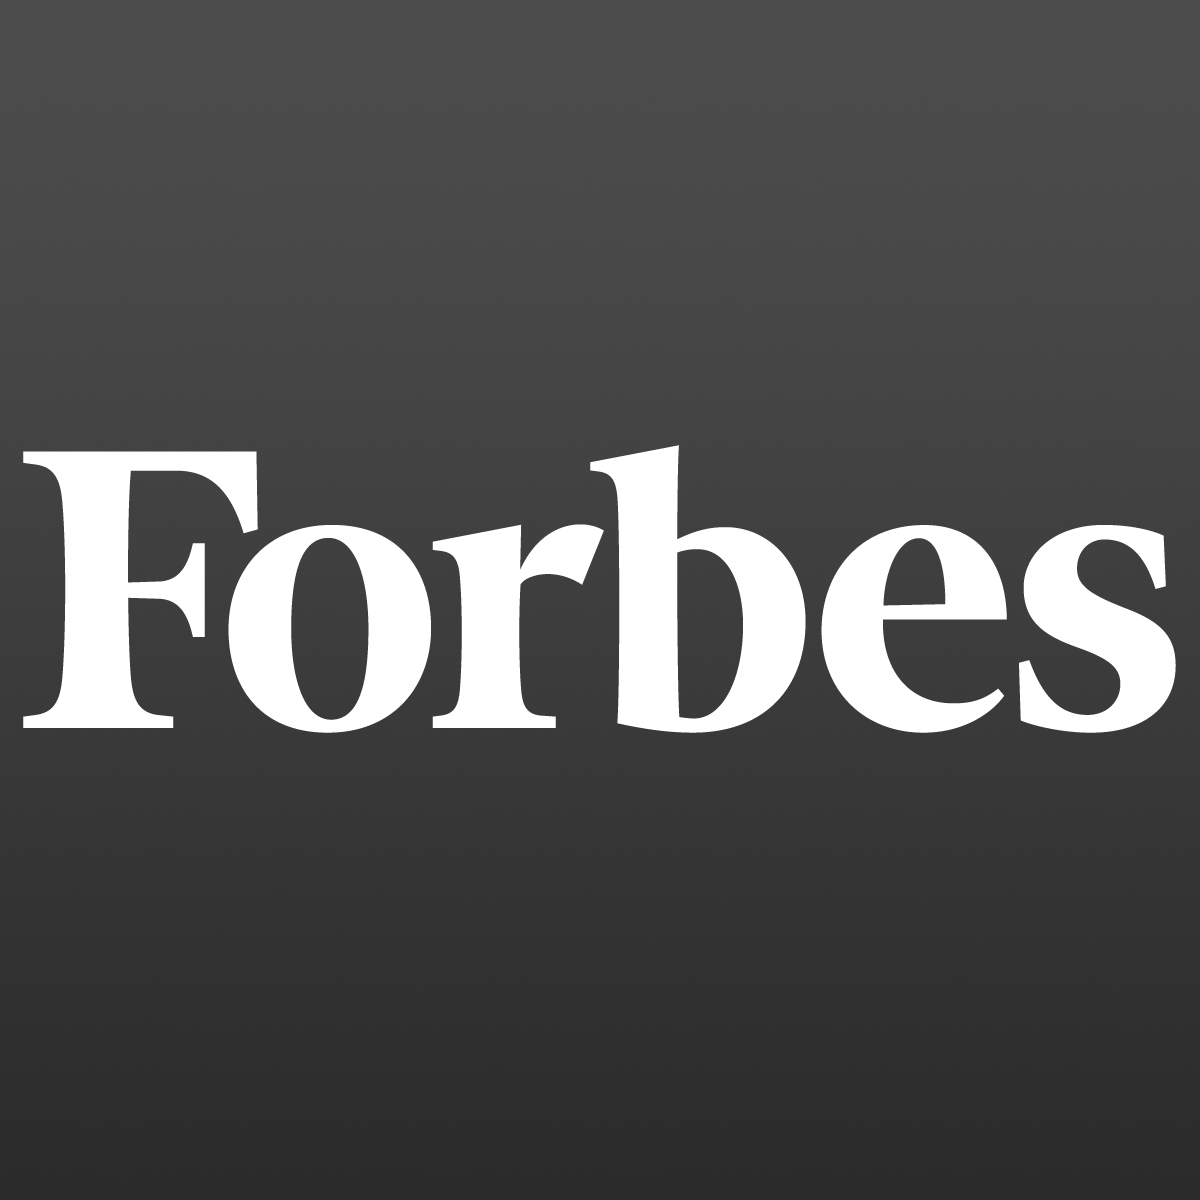 Motivational Speaker Joins Forbes' Exclusive Speakers Bureau